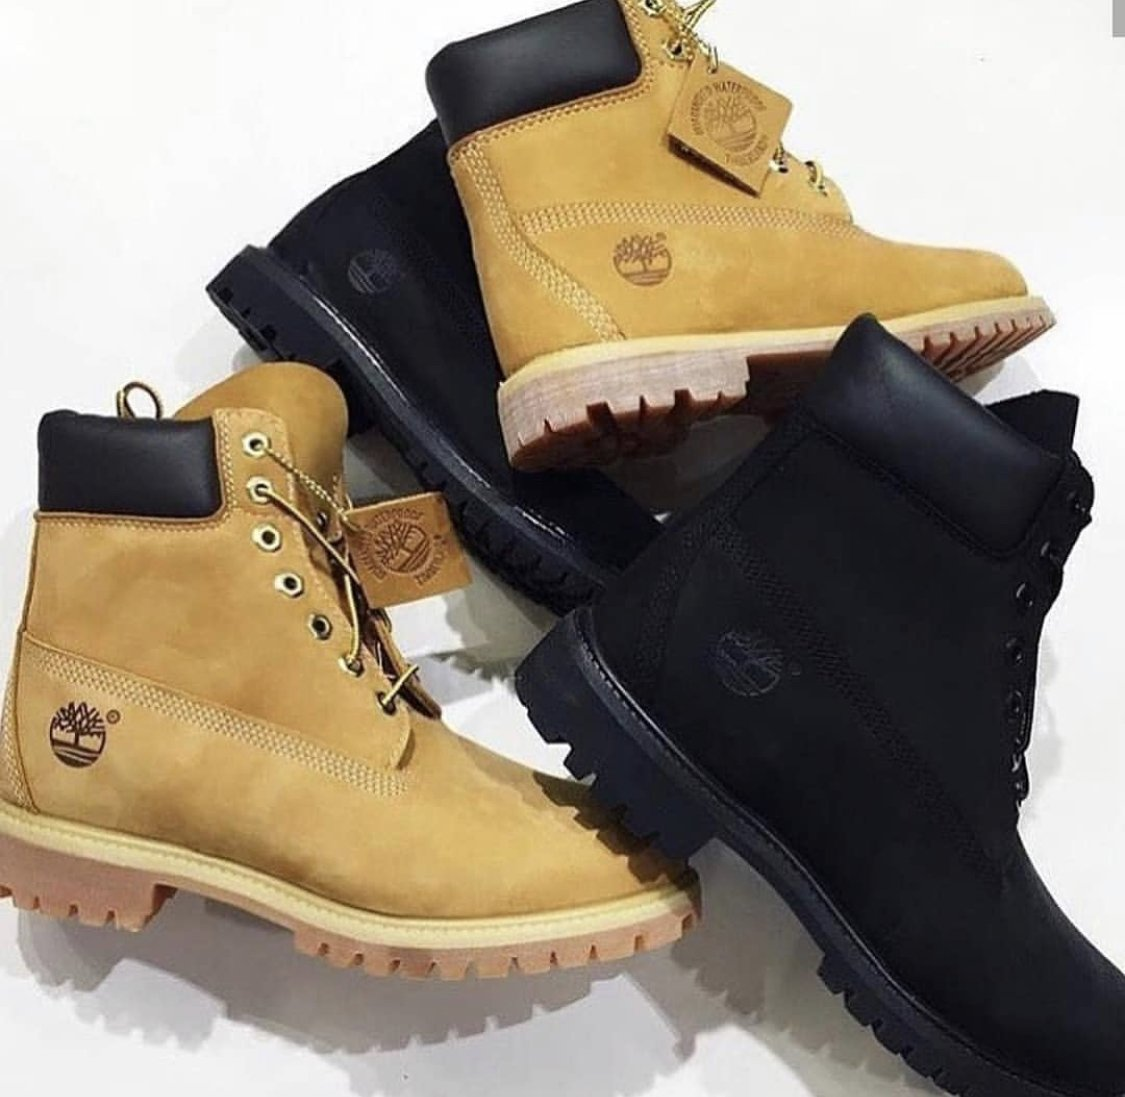 61af8cb77ba81 20% OFF + FREE shipping on the Timberland 6-inch Premium Boots. Wheat   http   bit.ly 2hKf5b0 Black  http   bit.ly 2hKuQP9  pic.twitter.com SoasBbGwDS